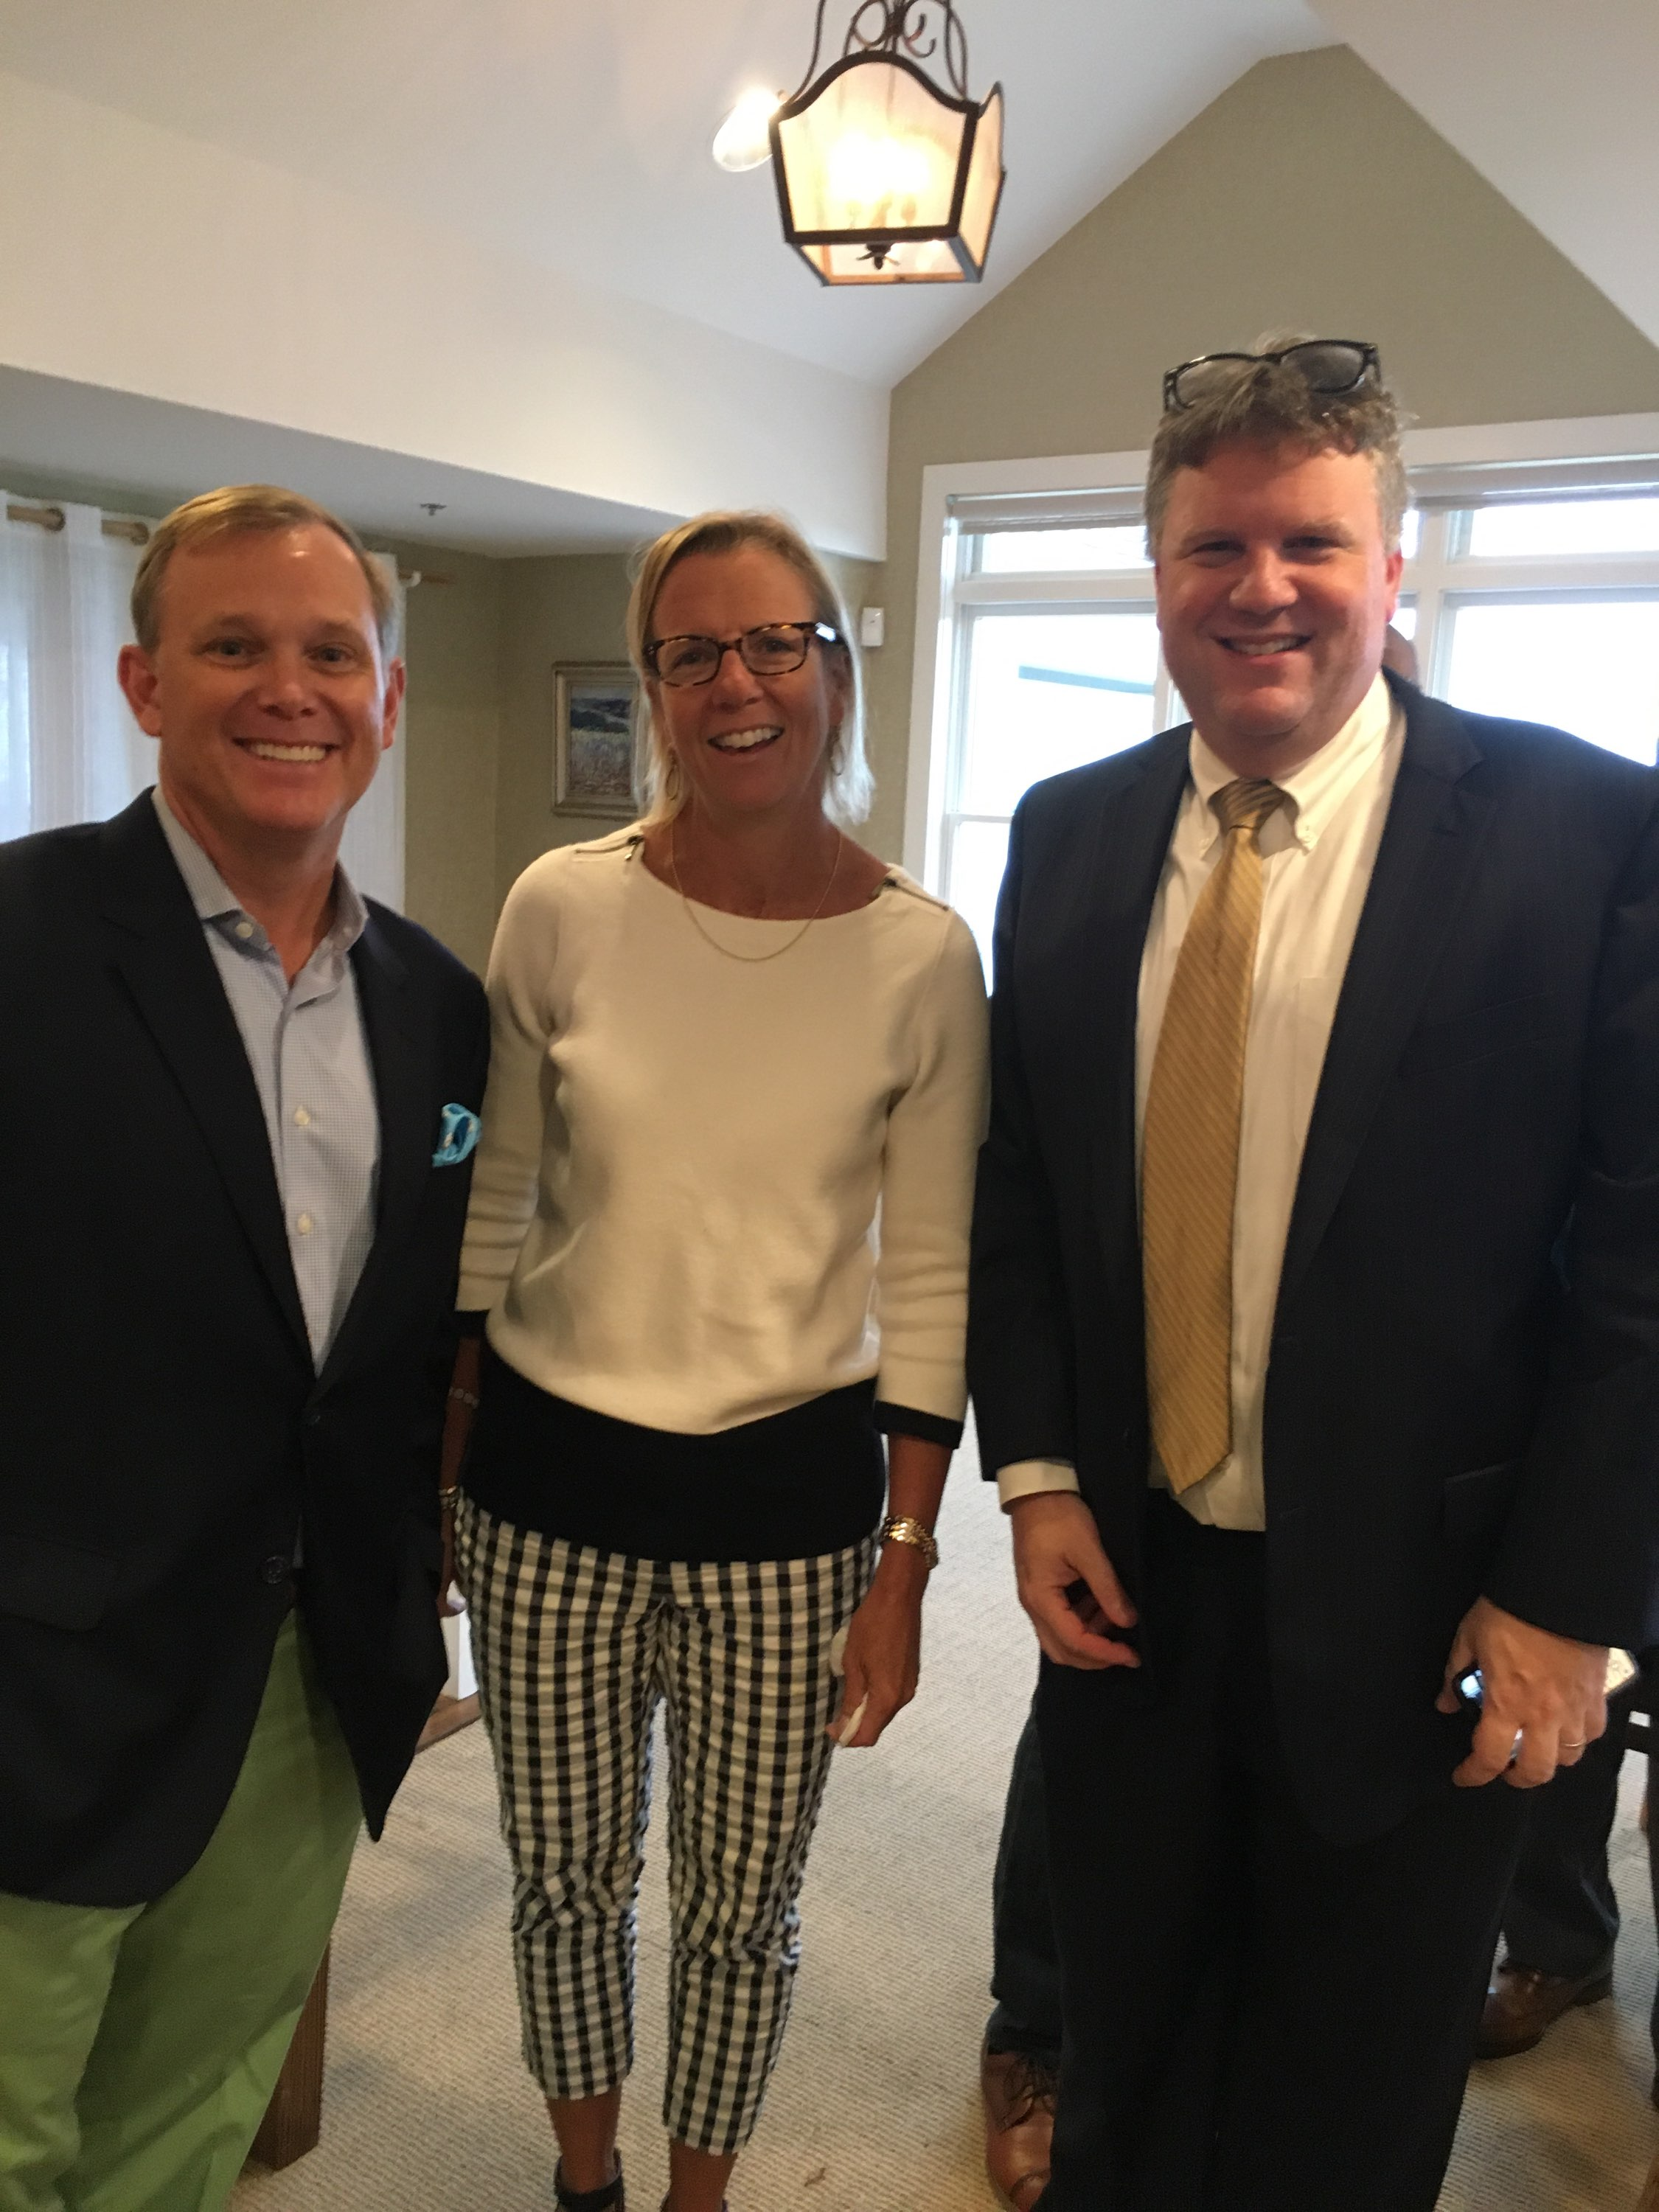 Trey Laird, Whitney Goetz, and Dr. Andrew Gerber